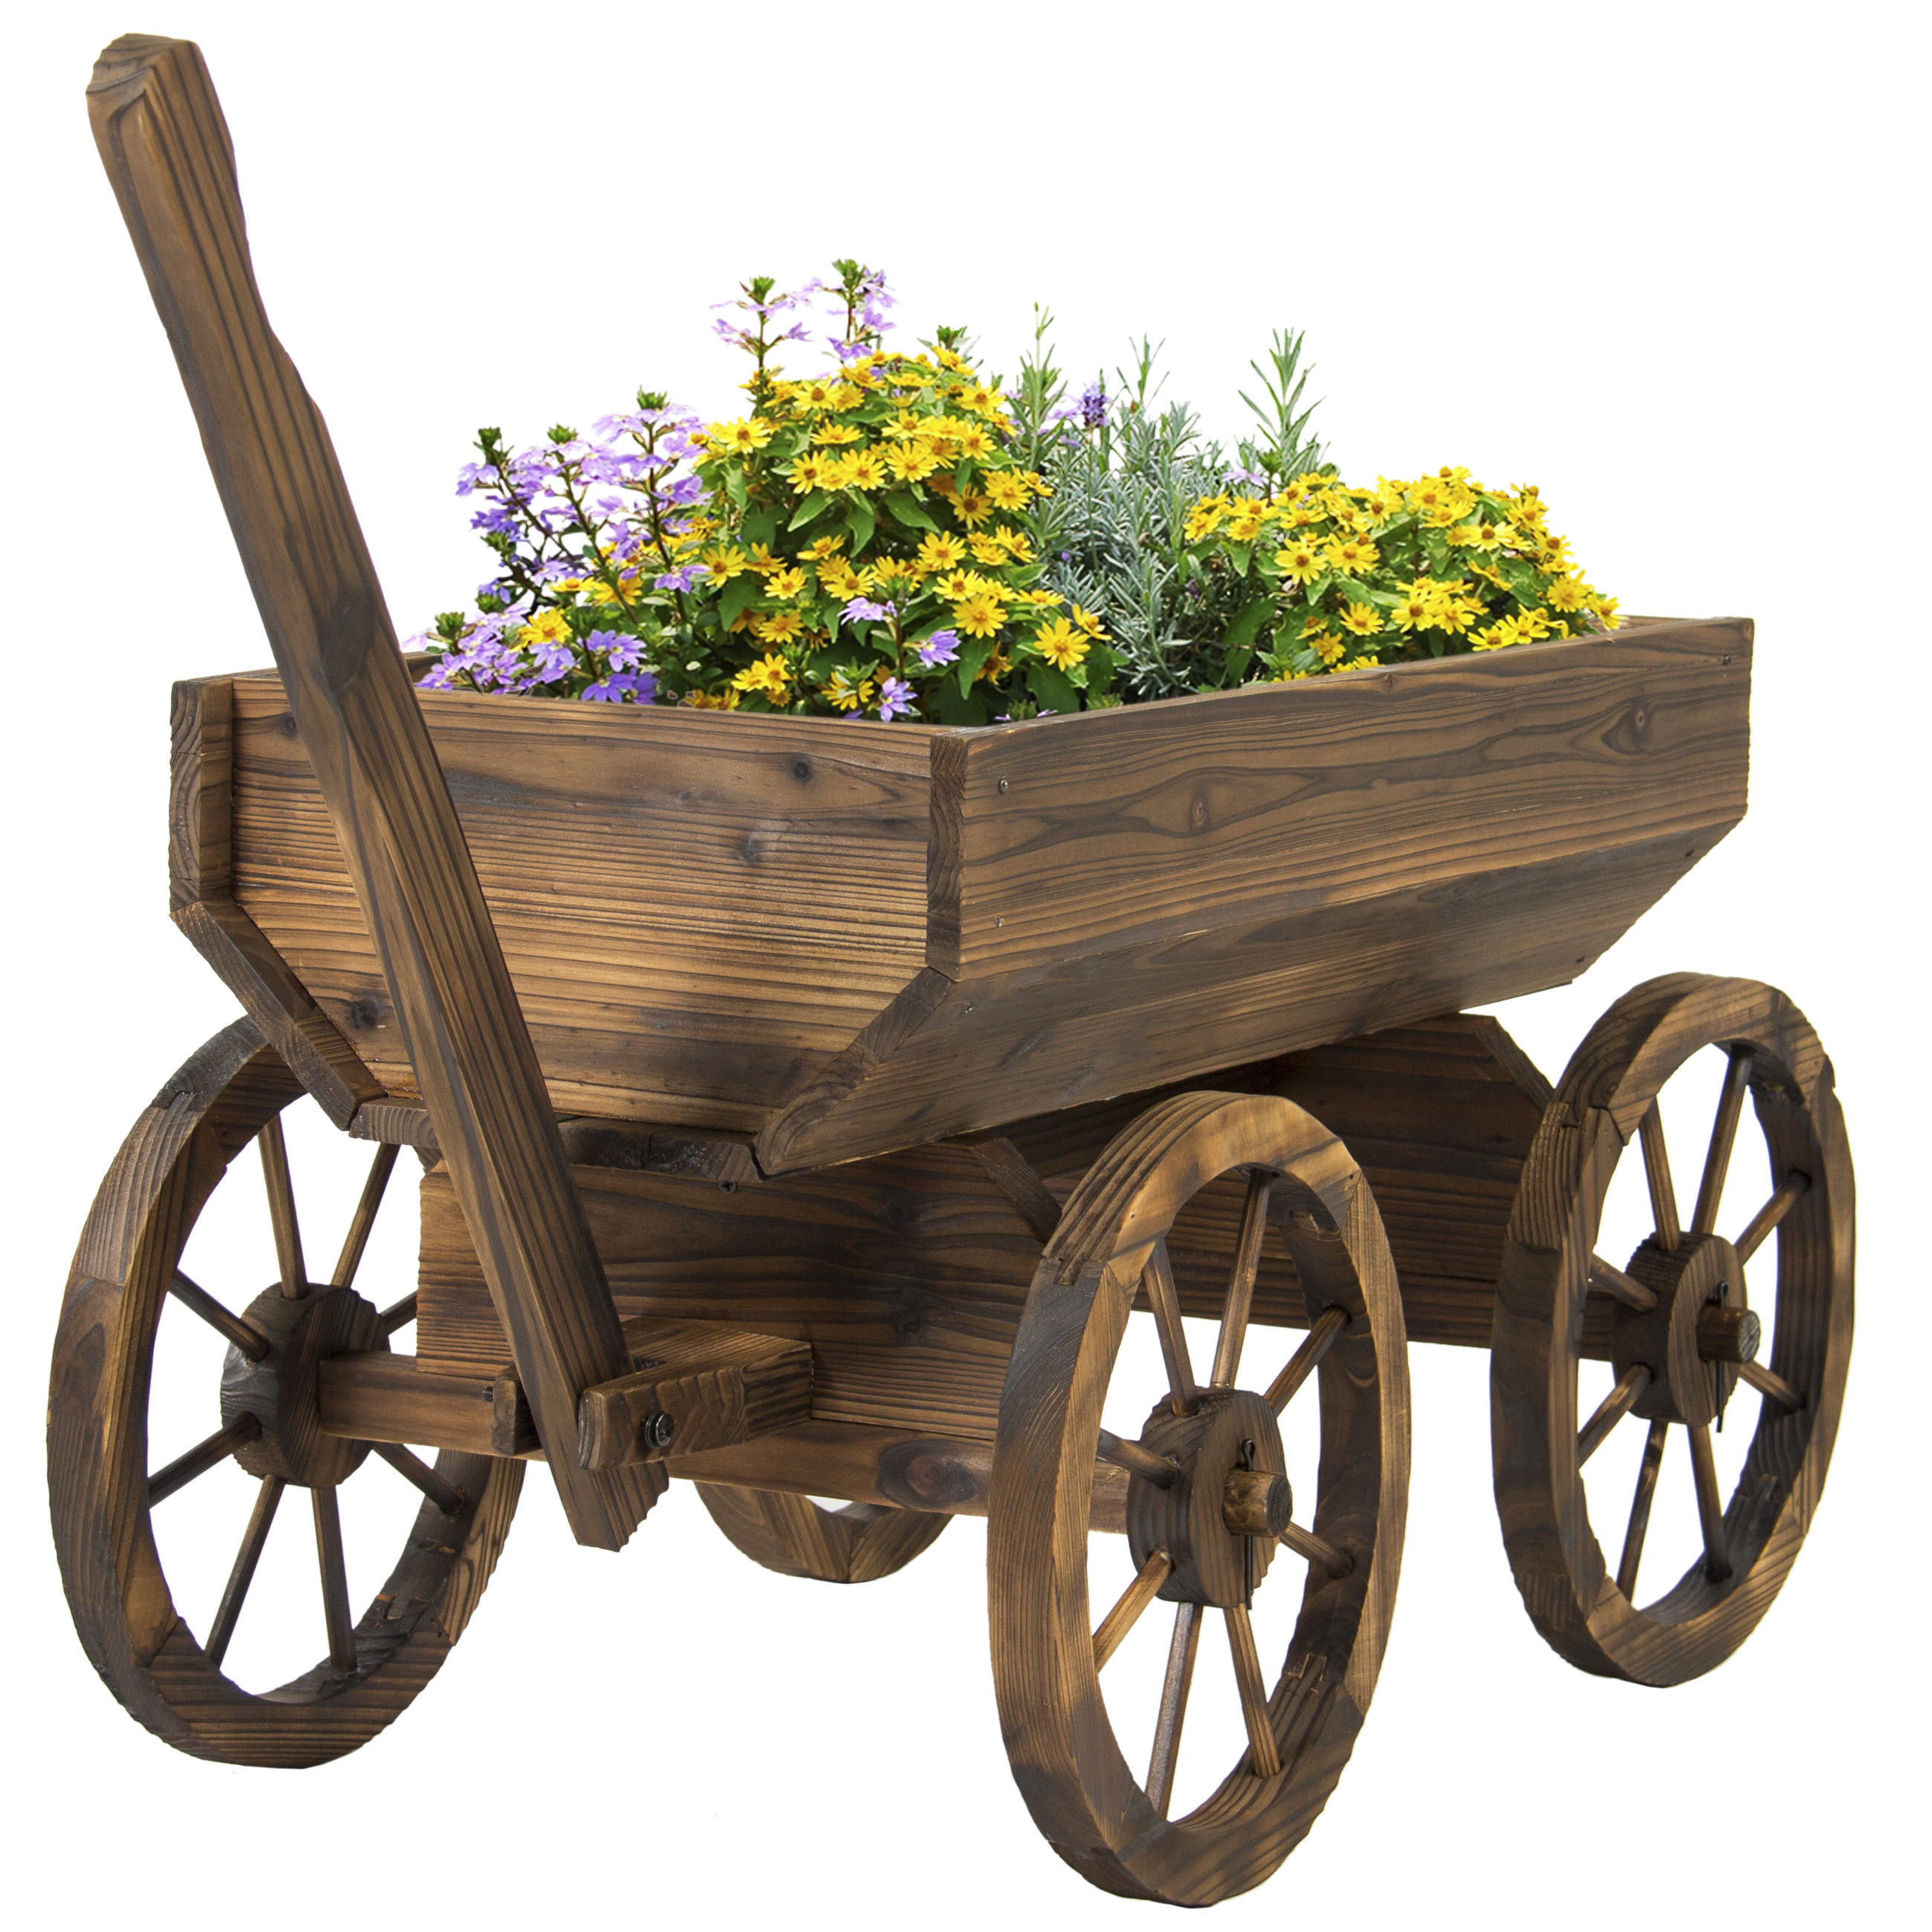 Wooden Garden Wagon - Home Design Ideas and Pictures